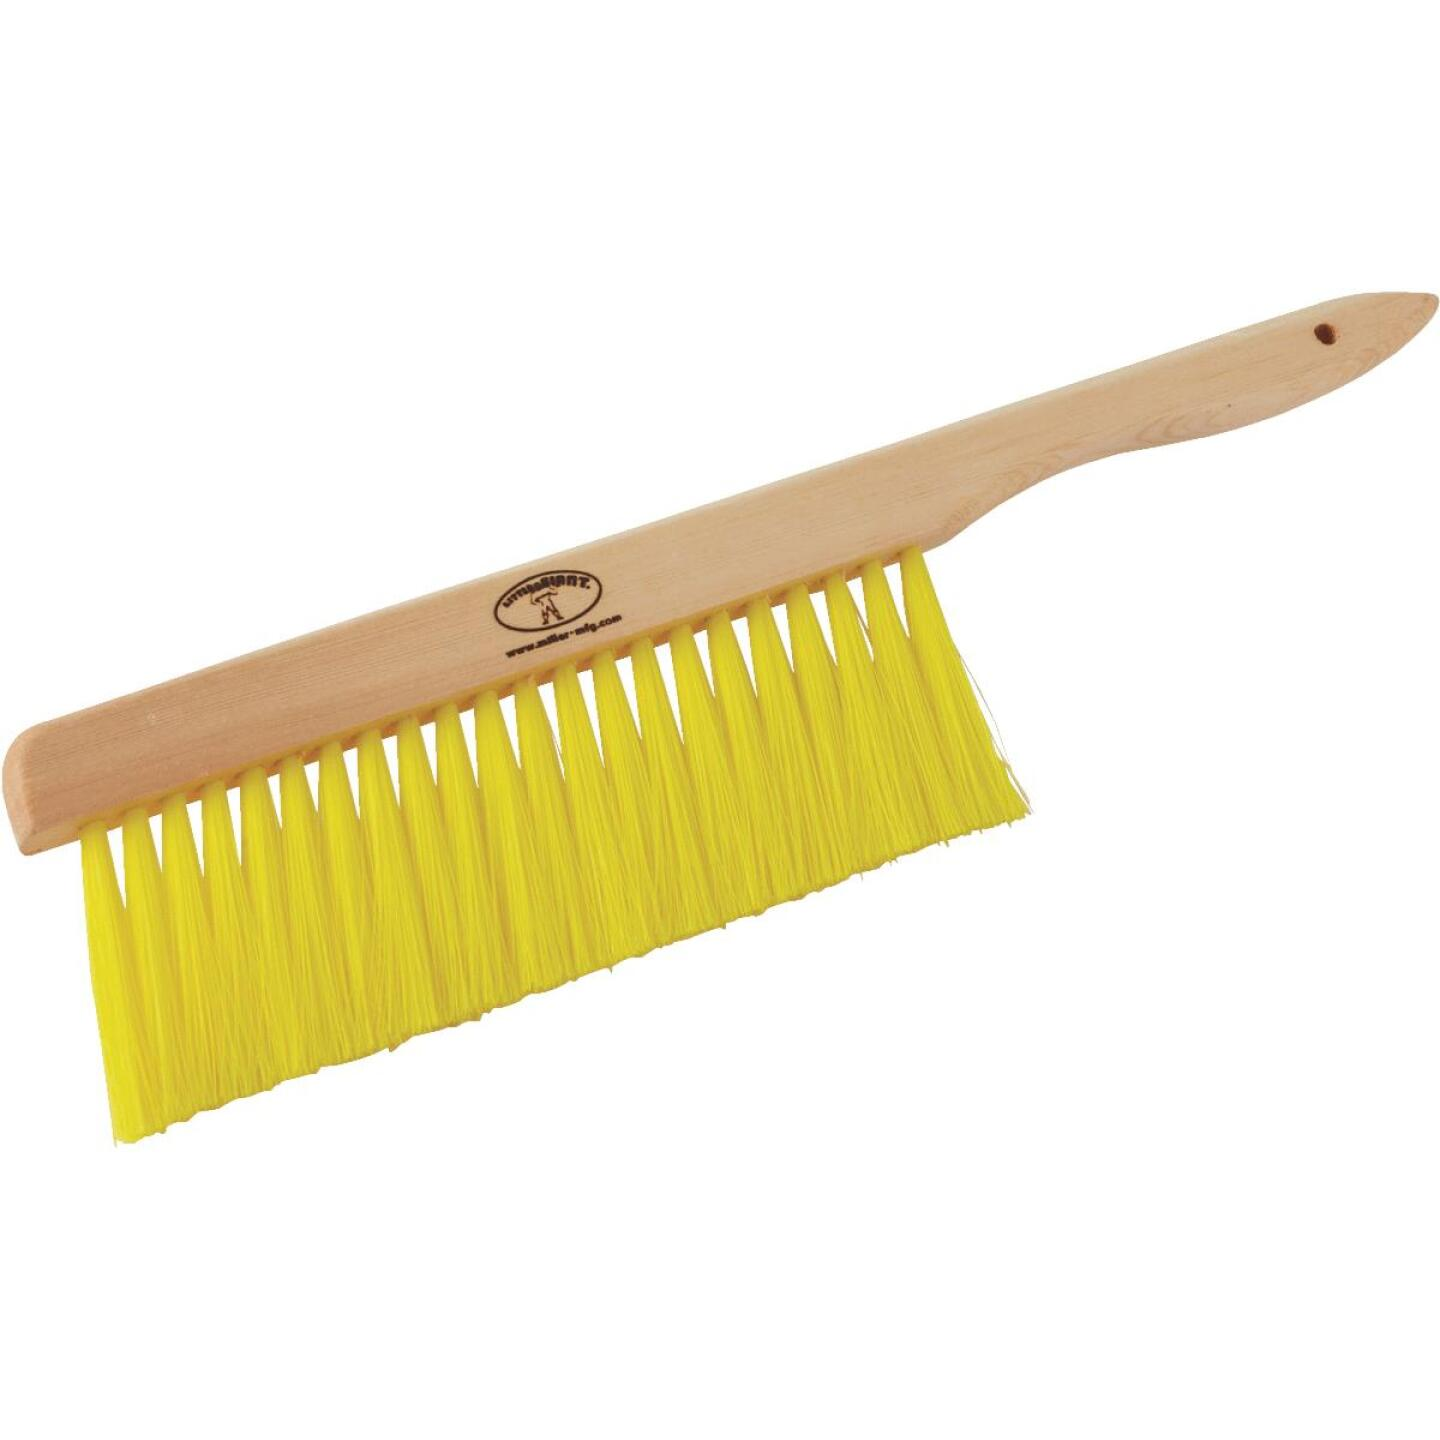 Little Giant 3.5 In. W. x 0.5 In. H. x 14 In. L. Wood Brush Beehive Tool Image 1